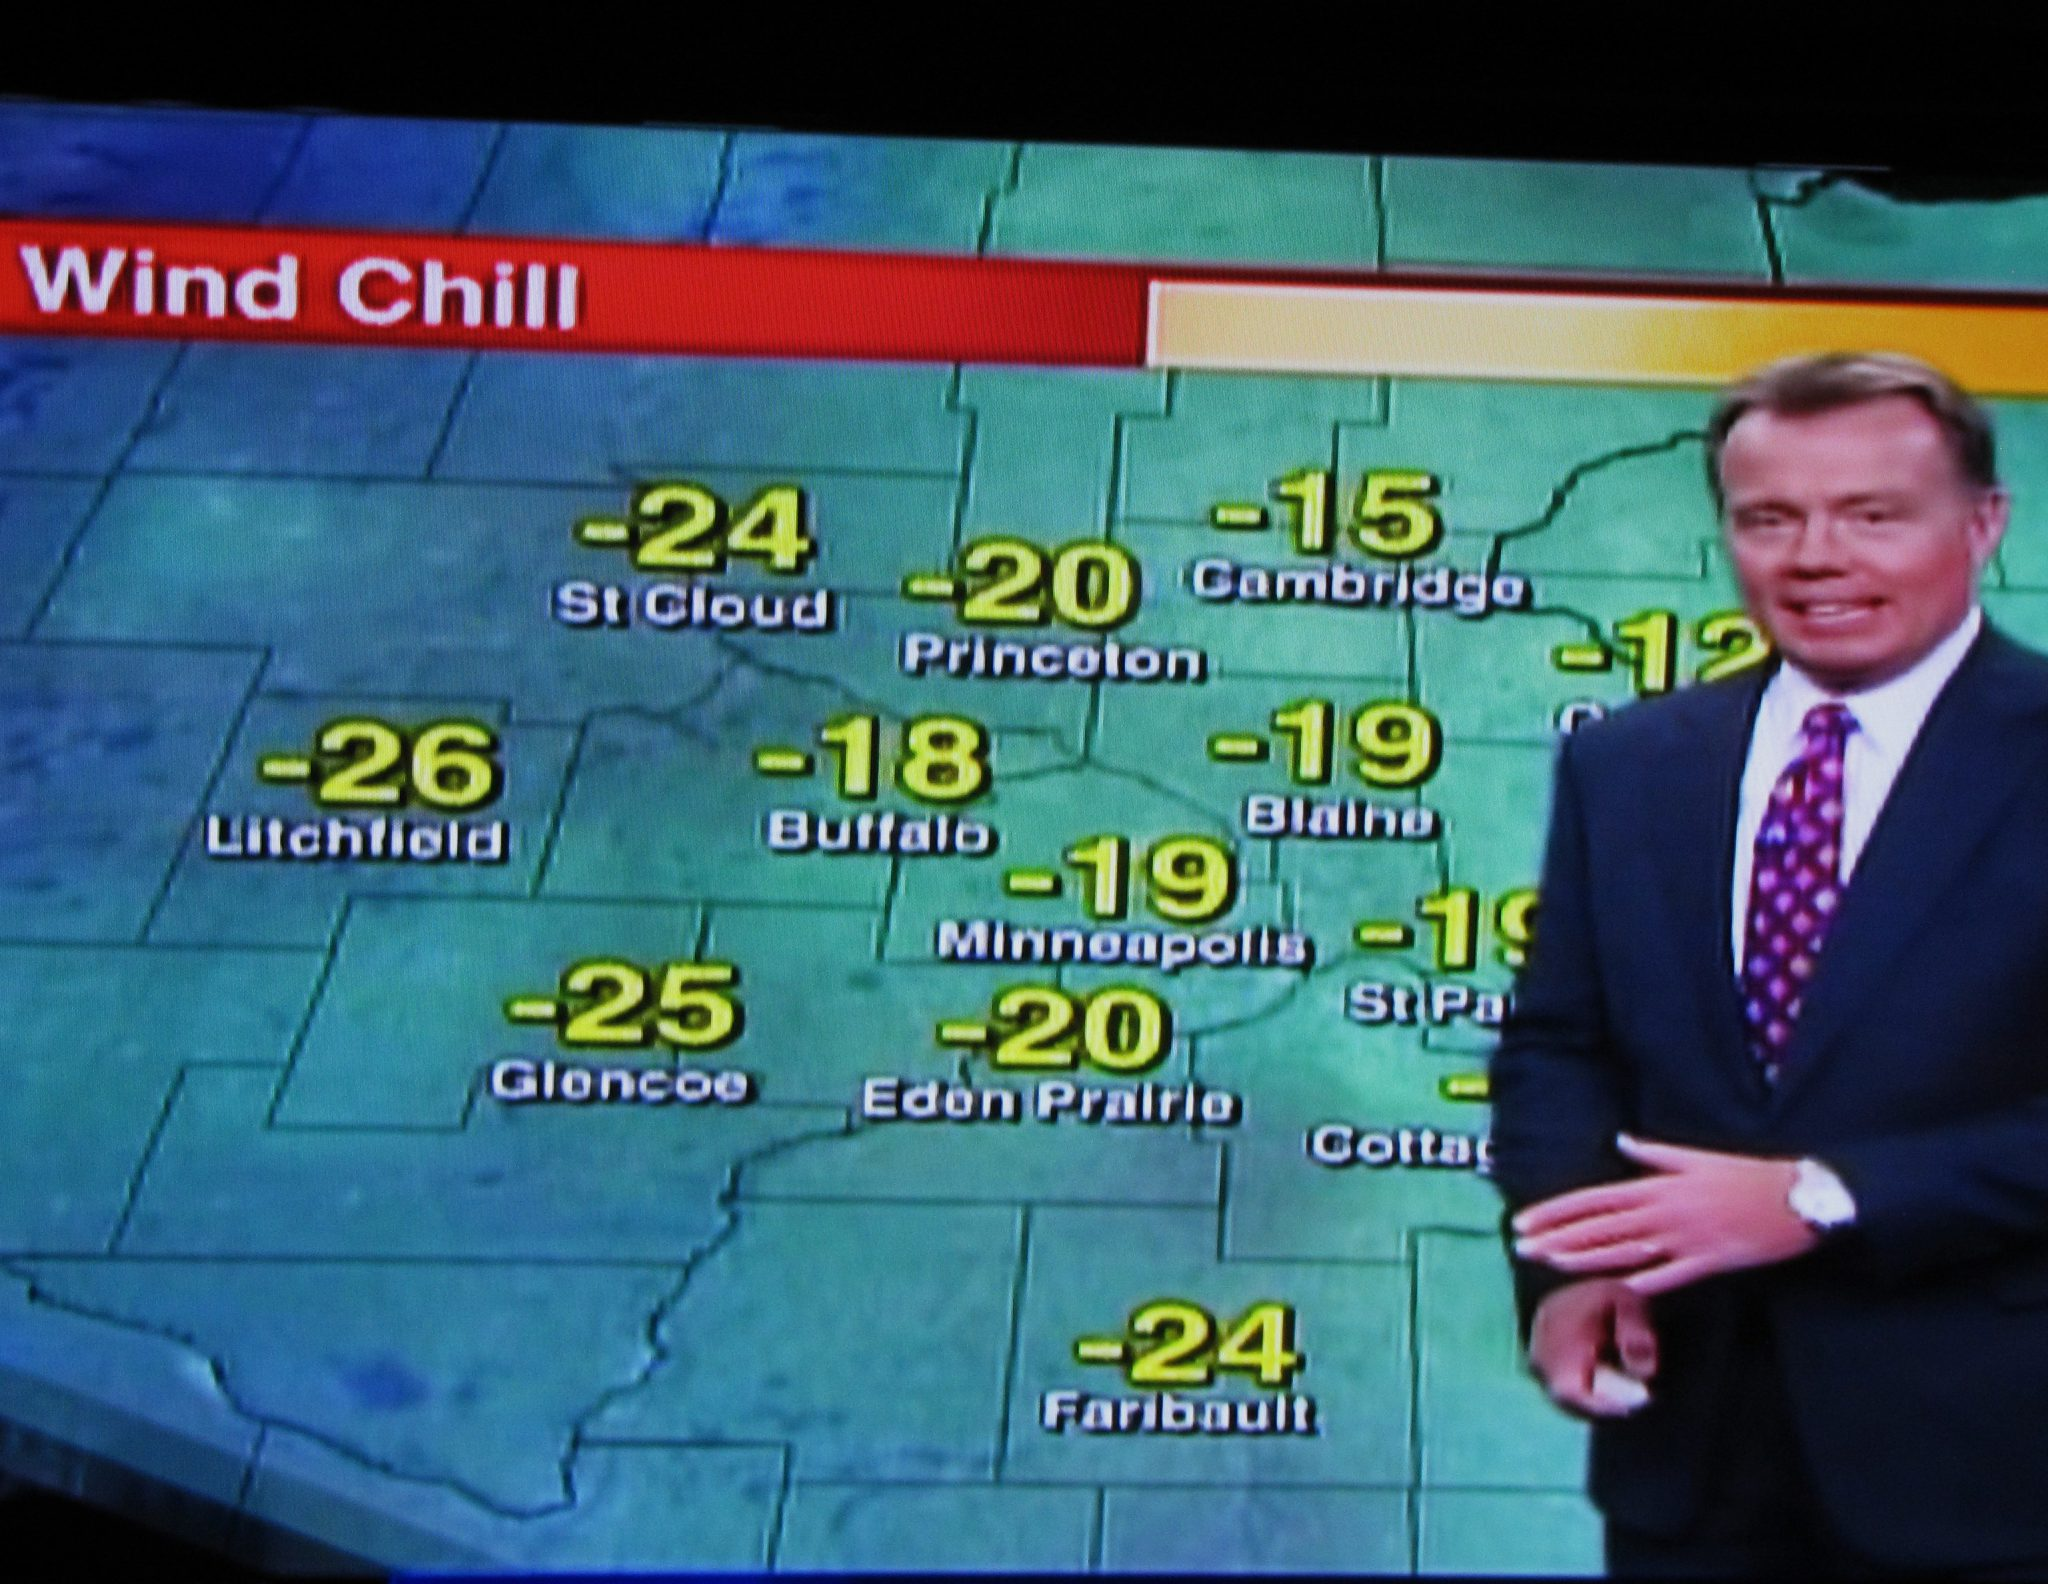 US weather forecast: wind chill